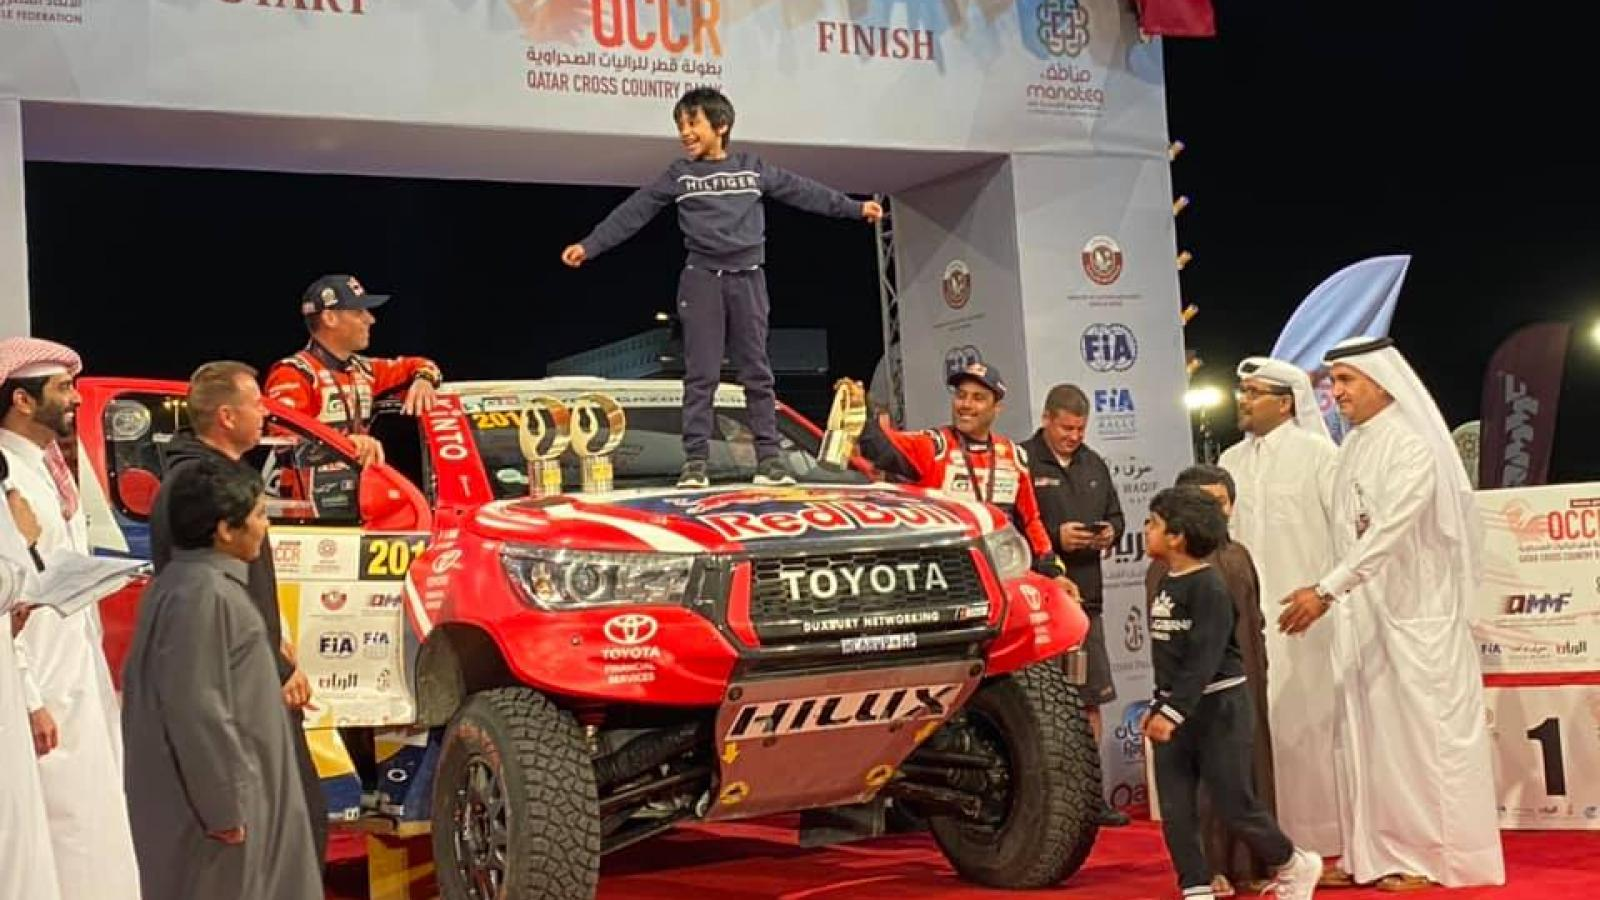 WATCH: Manateq Qatar Cross-Country Rally ends in style